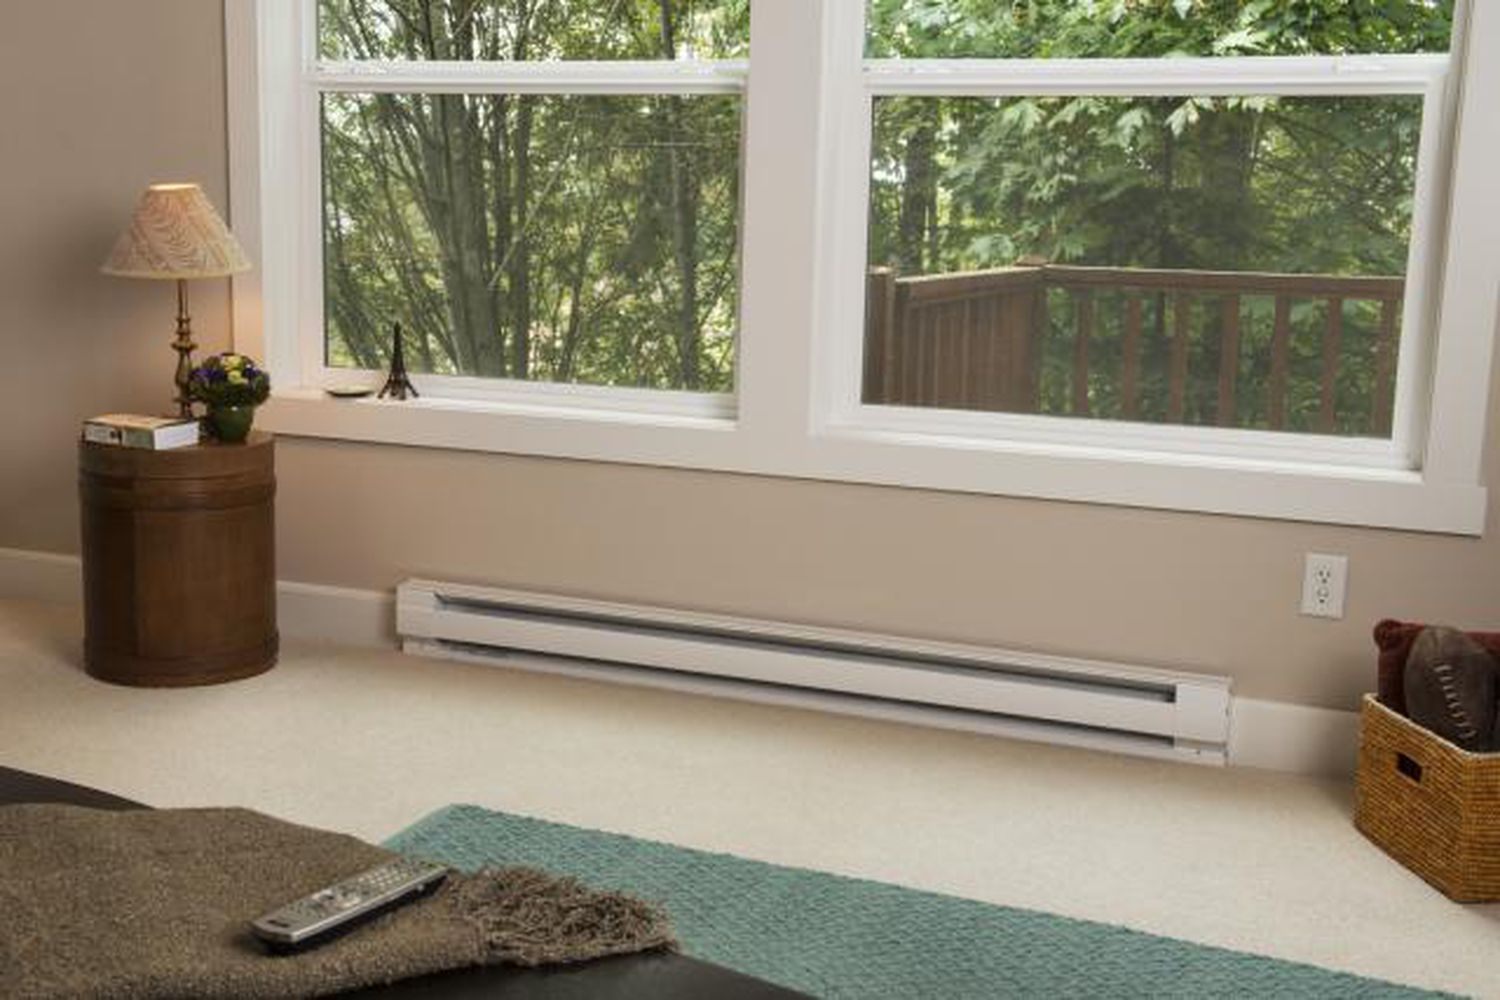 How To Size An Electric Baseboard Room Heater